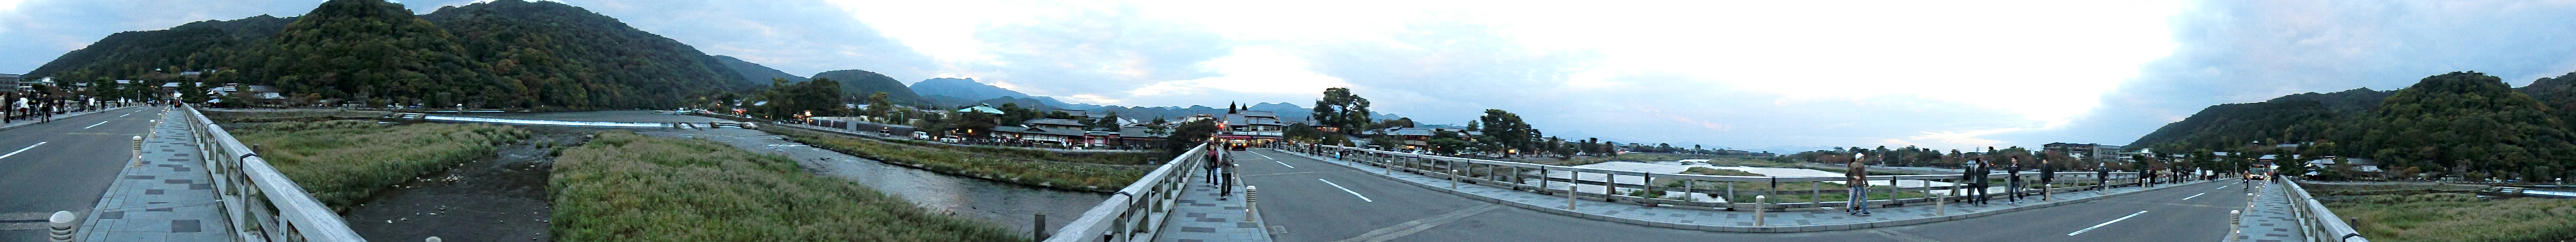 https://upload.wikimedia.org/wikipedia/commons/e/e4/View_from_TogetsuKyo_Bridge_360.JPG